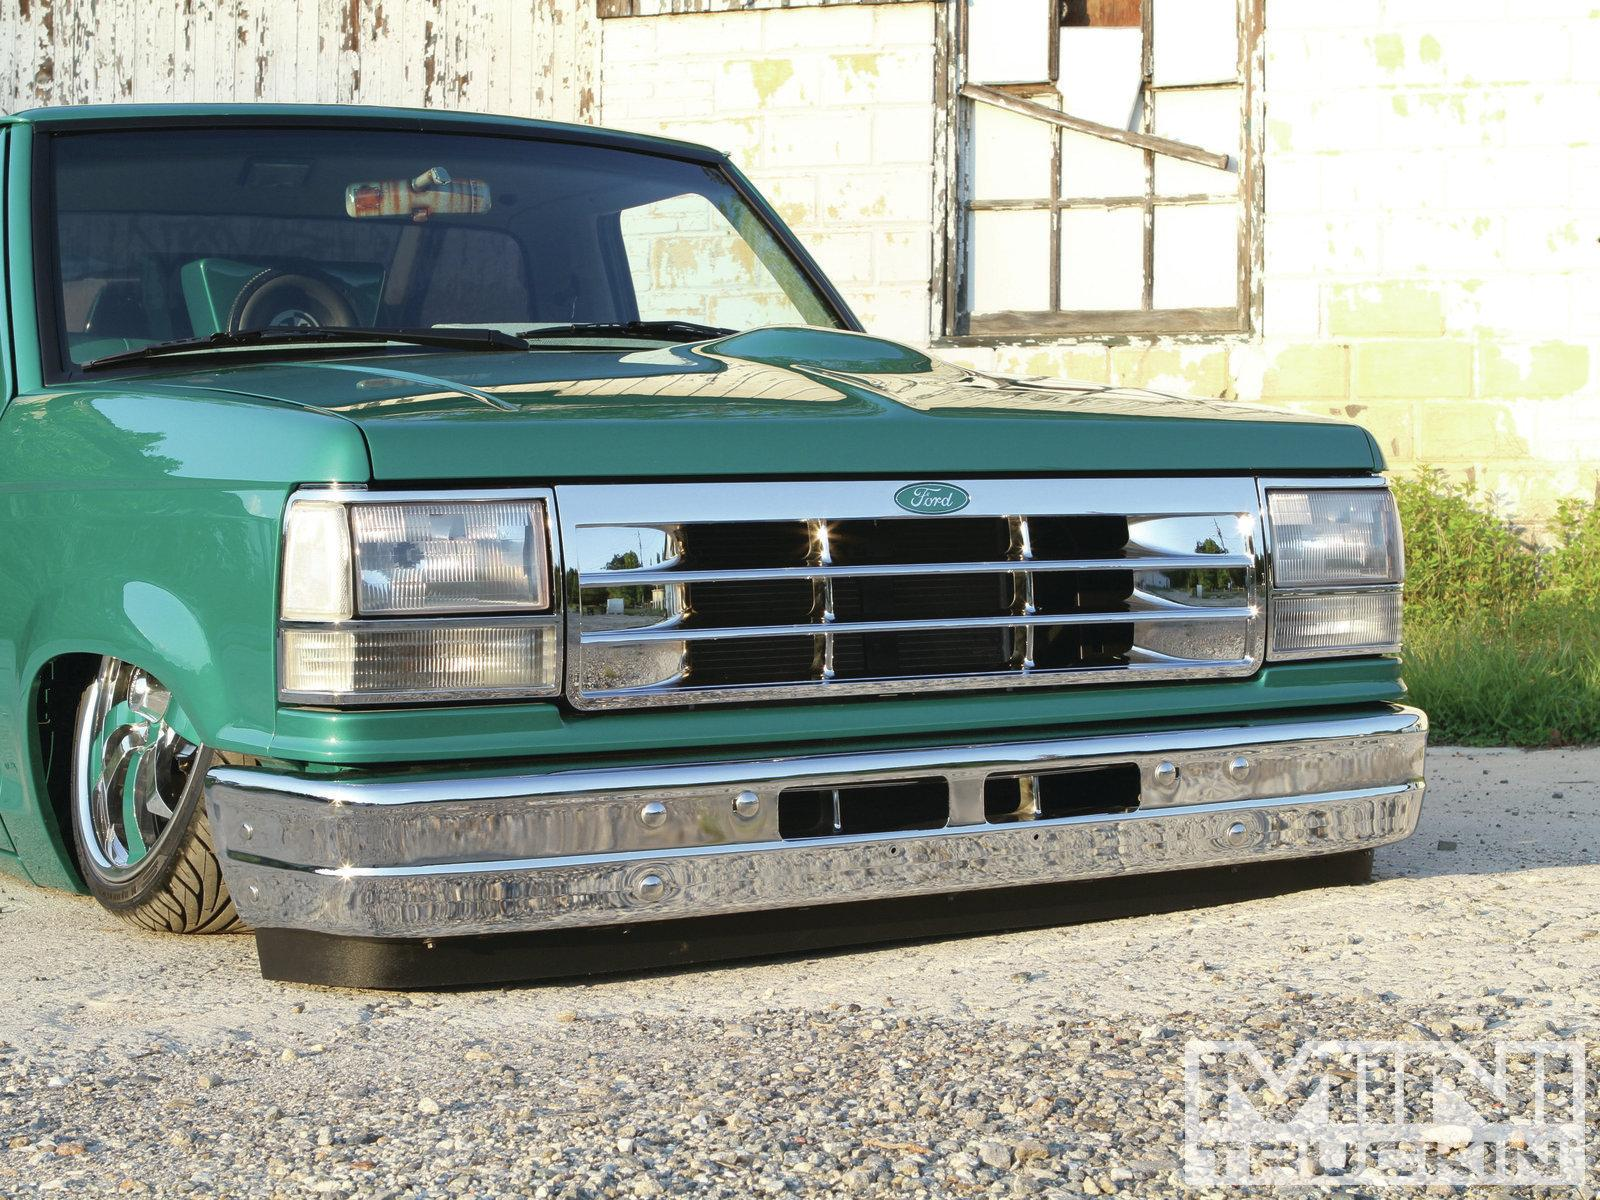 1992 Ford Ranger Grill Diagram - Block And Schematic Diagrams •